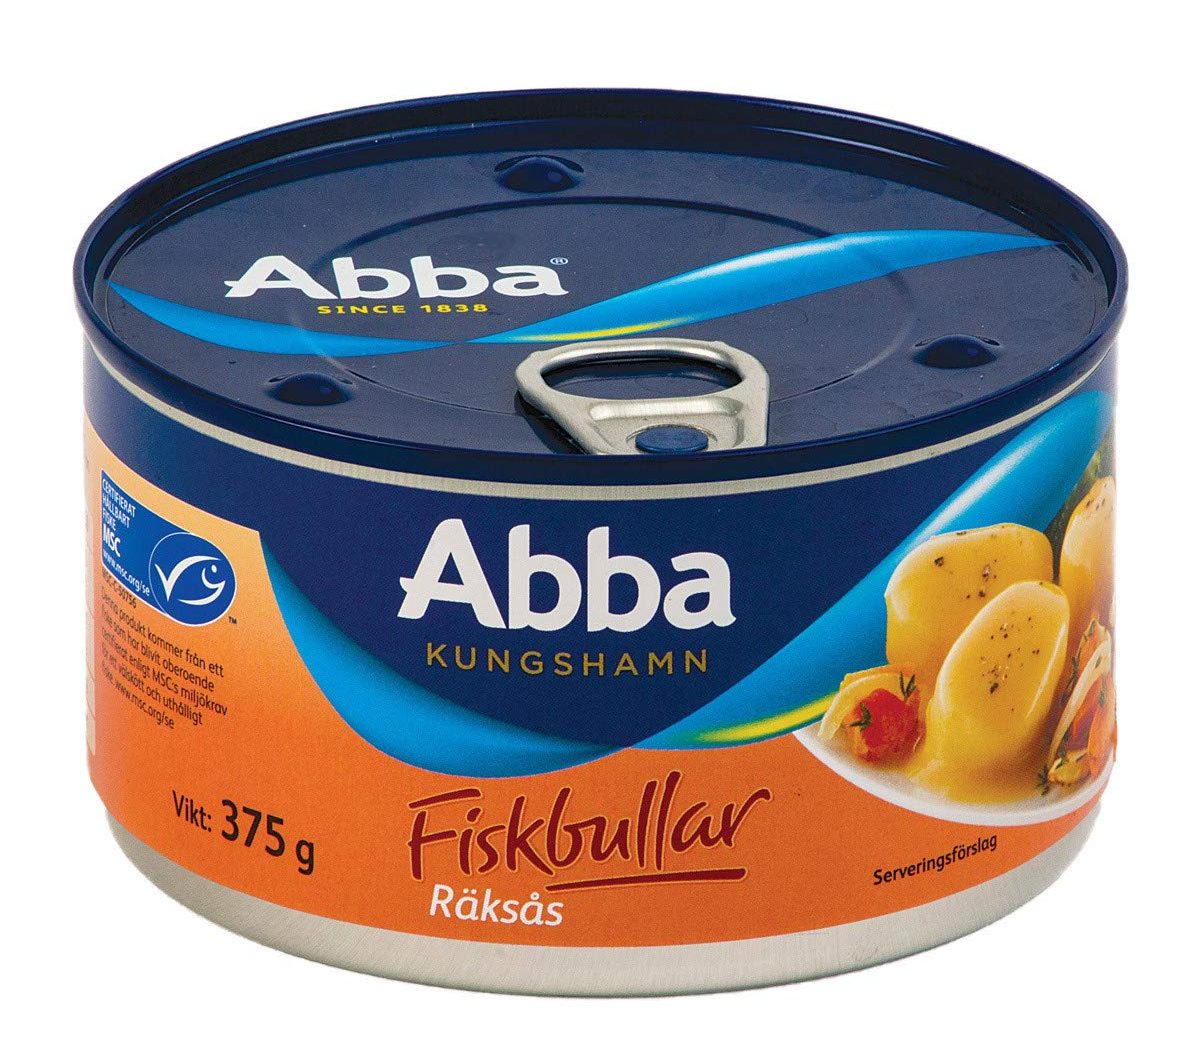 71IN8p5EzOL. SL1200 e1604912856646 40 Things You Probably Didn't Know About ABBA